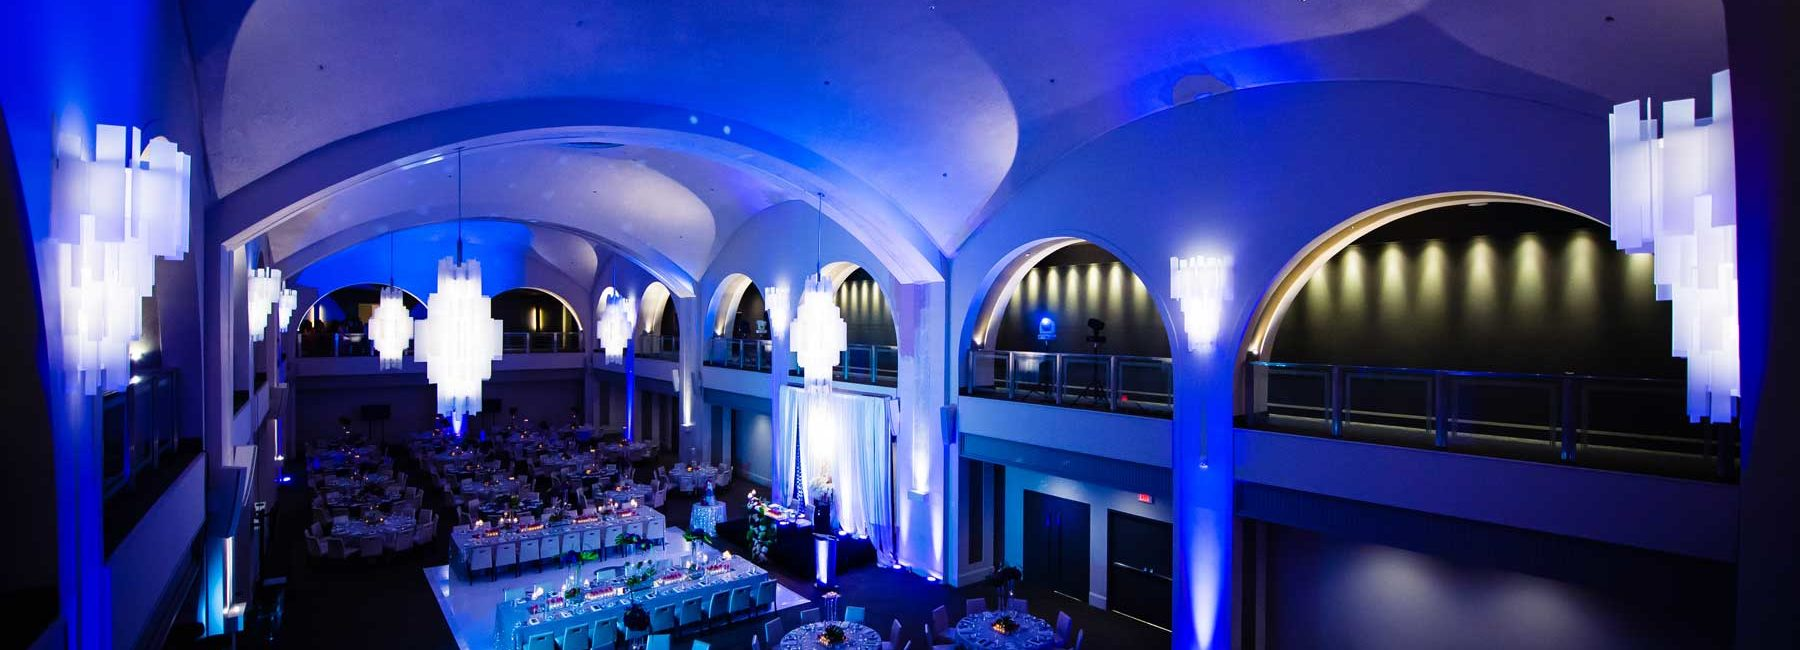 a dark blue lit event space with glamorous chandeliers and dining tables